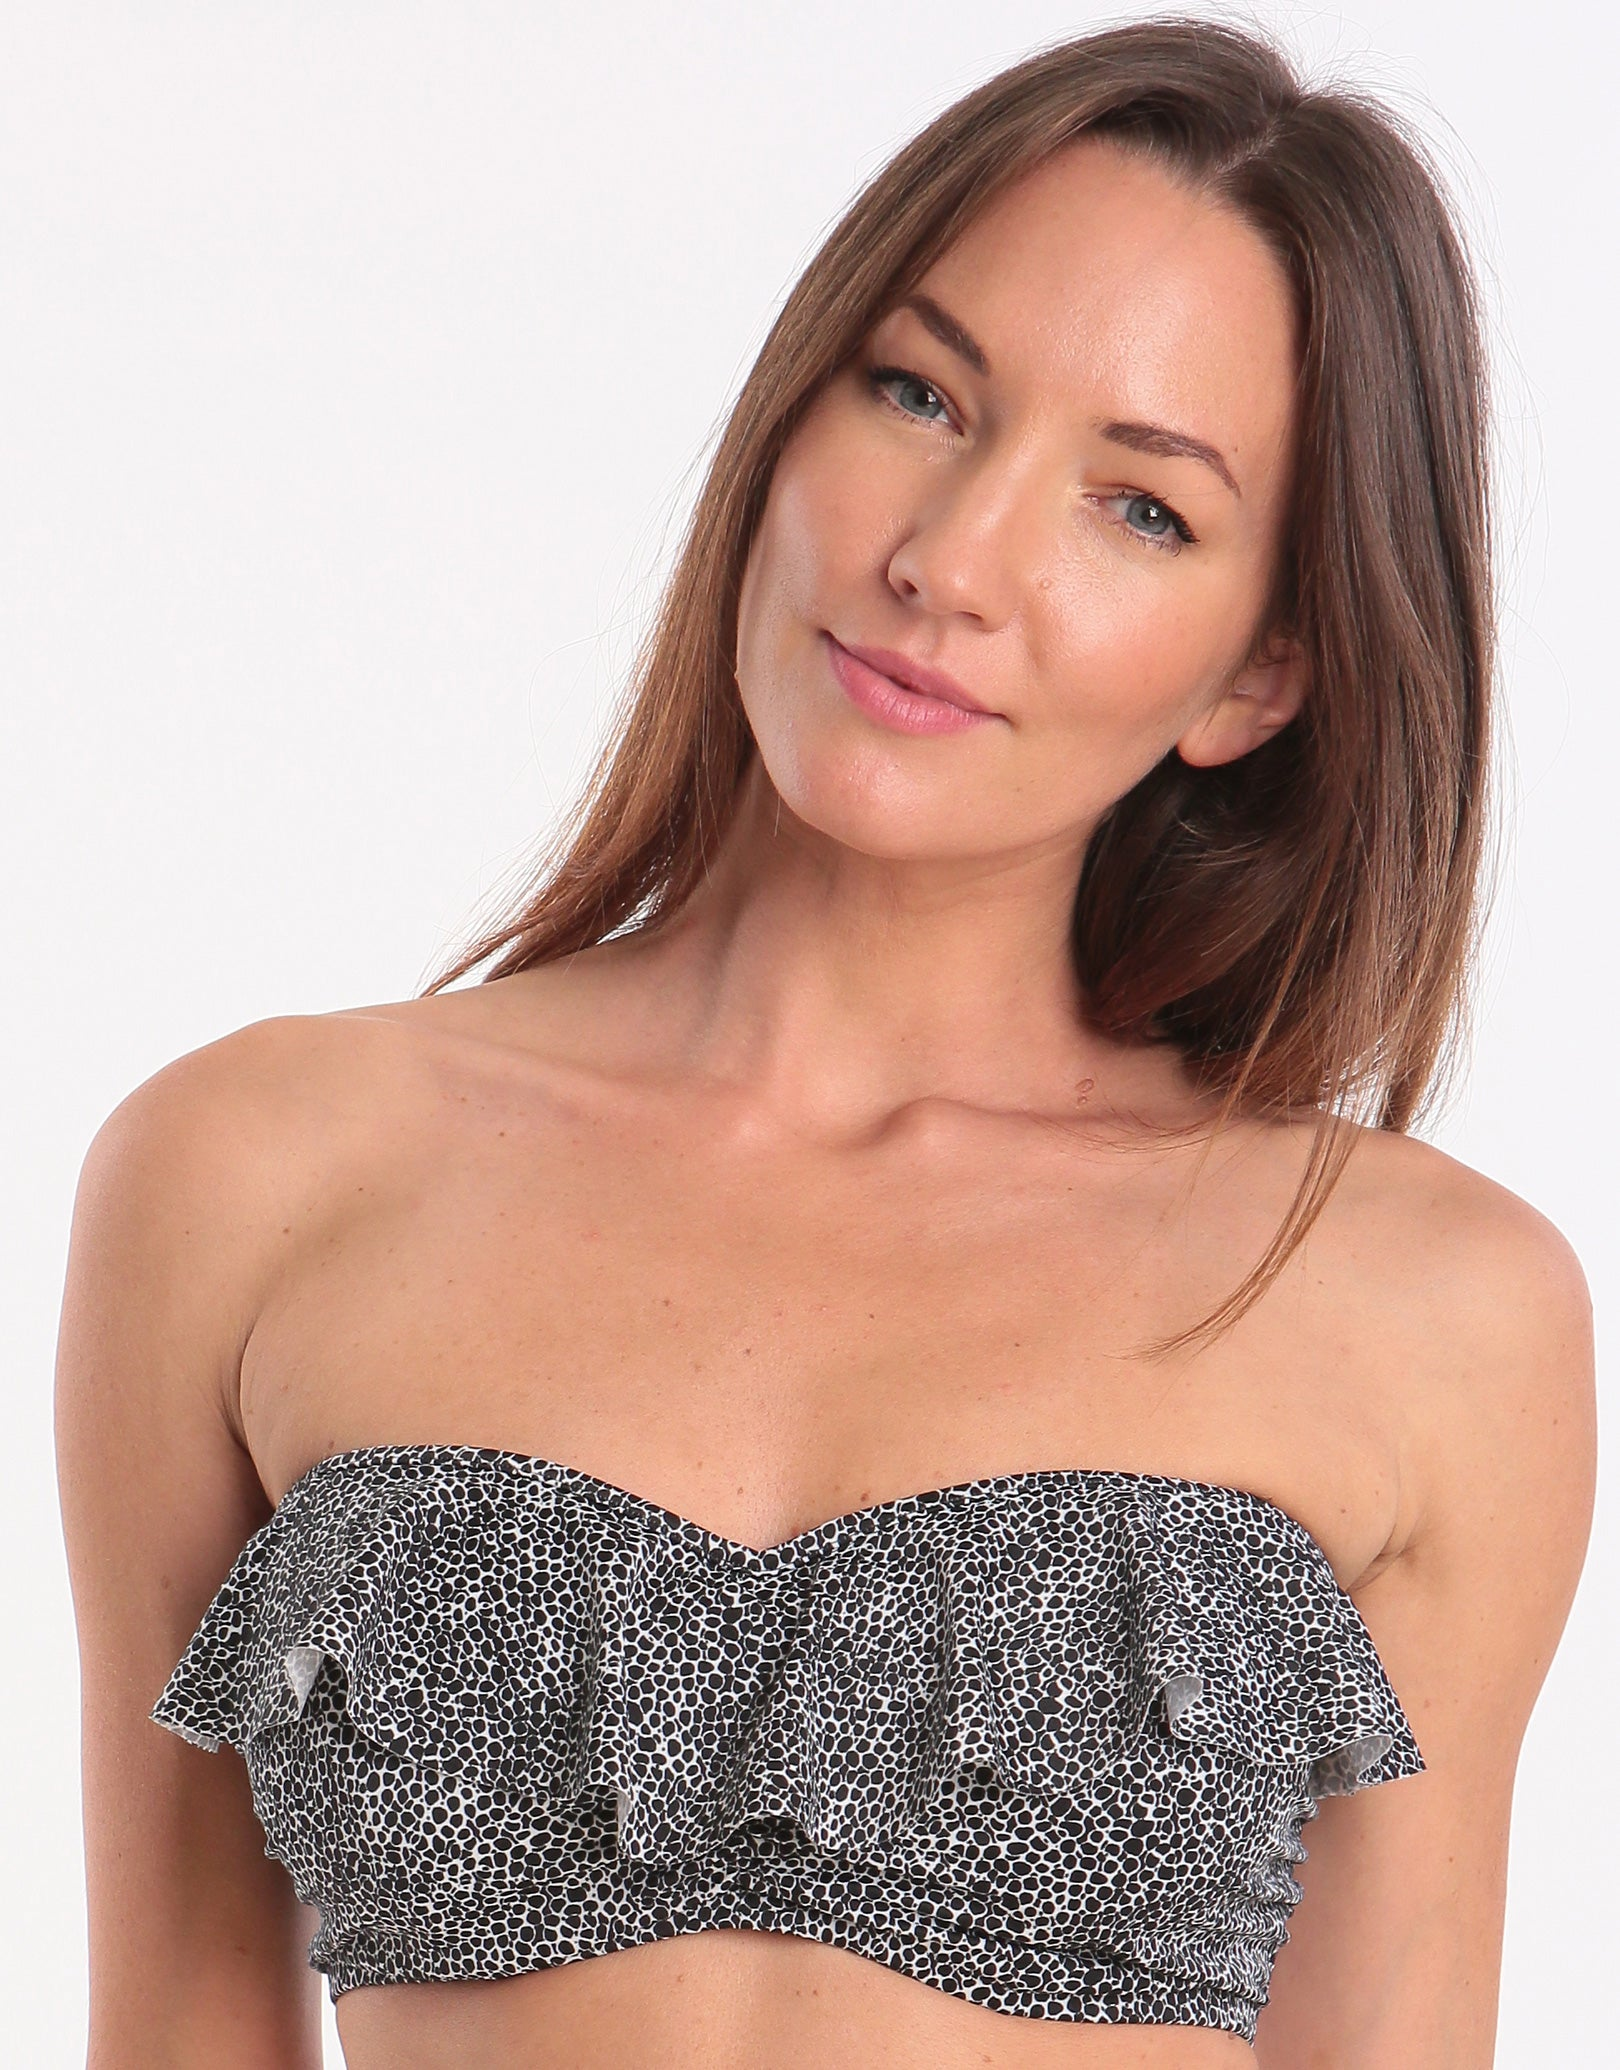 f4d587cc8 Freya Run Wild UW Padded Frill Bandeau Top - Black